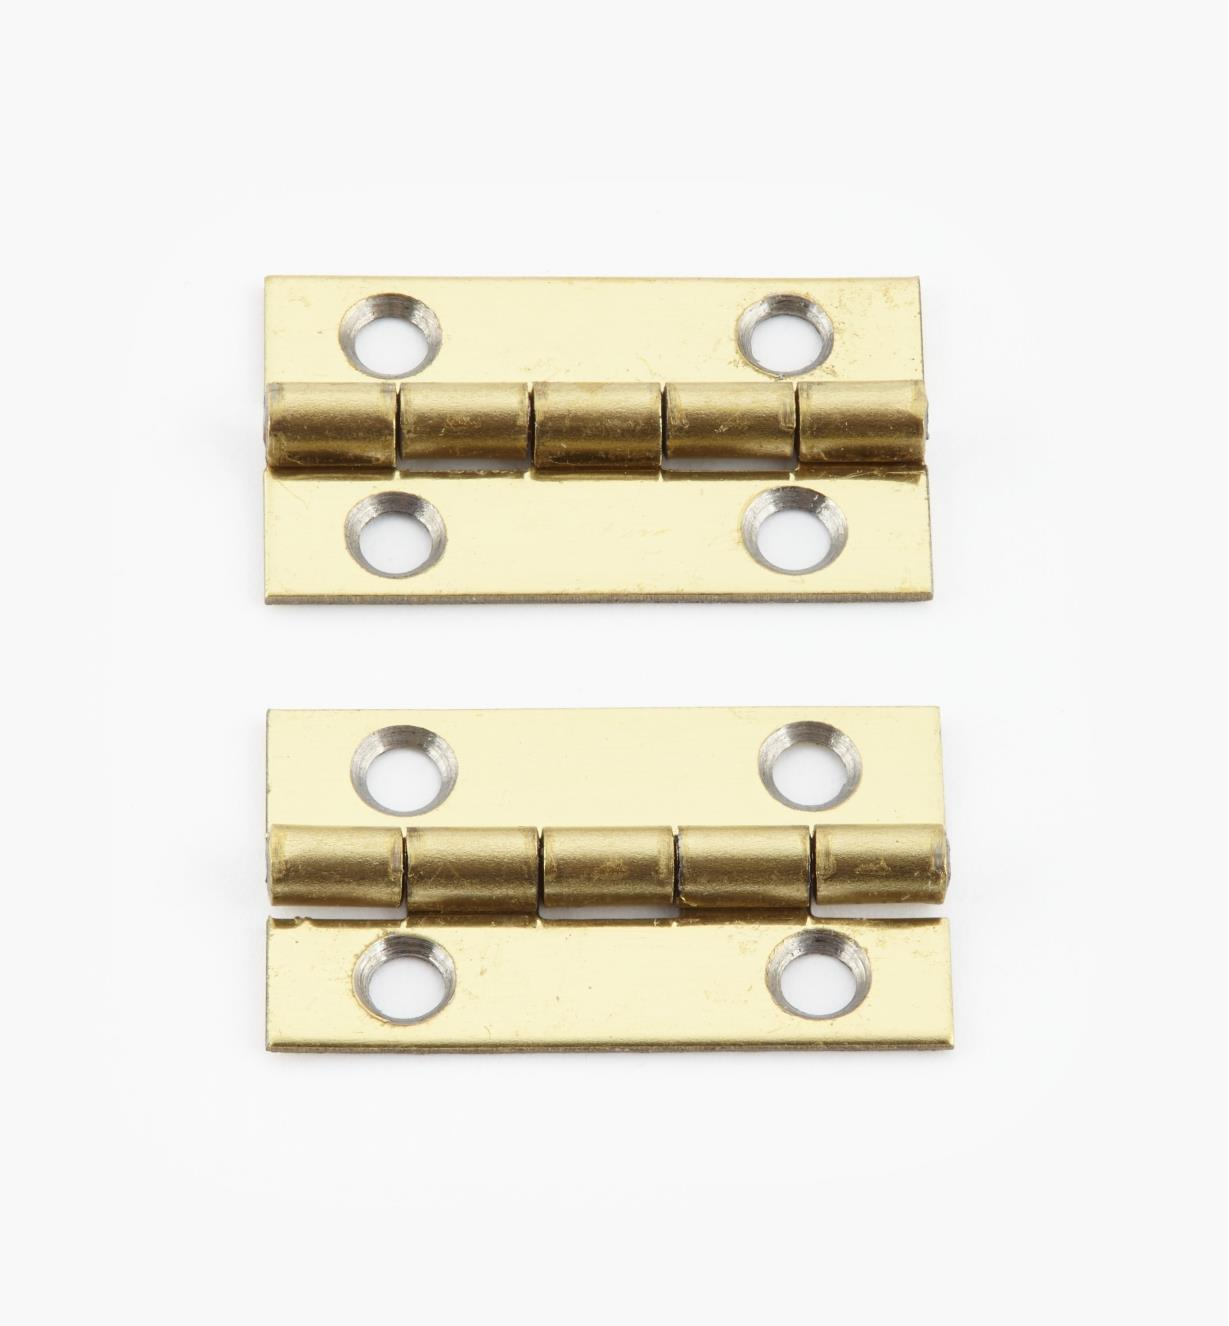 00D3008 - 25mm x 15mm Small Box Hinges, pr.